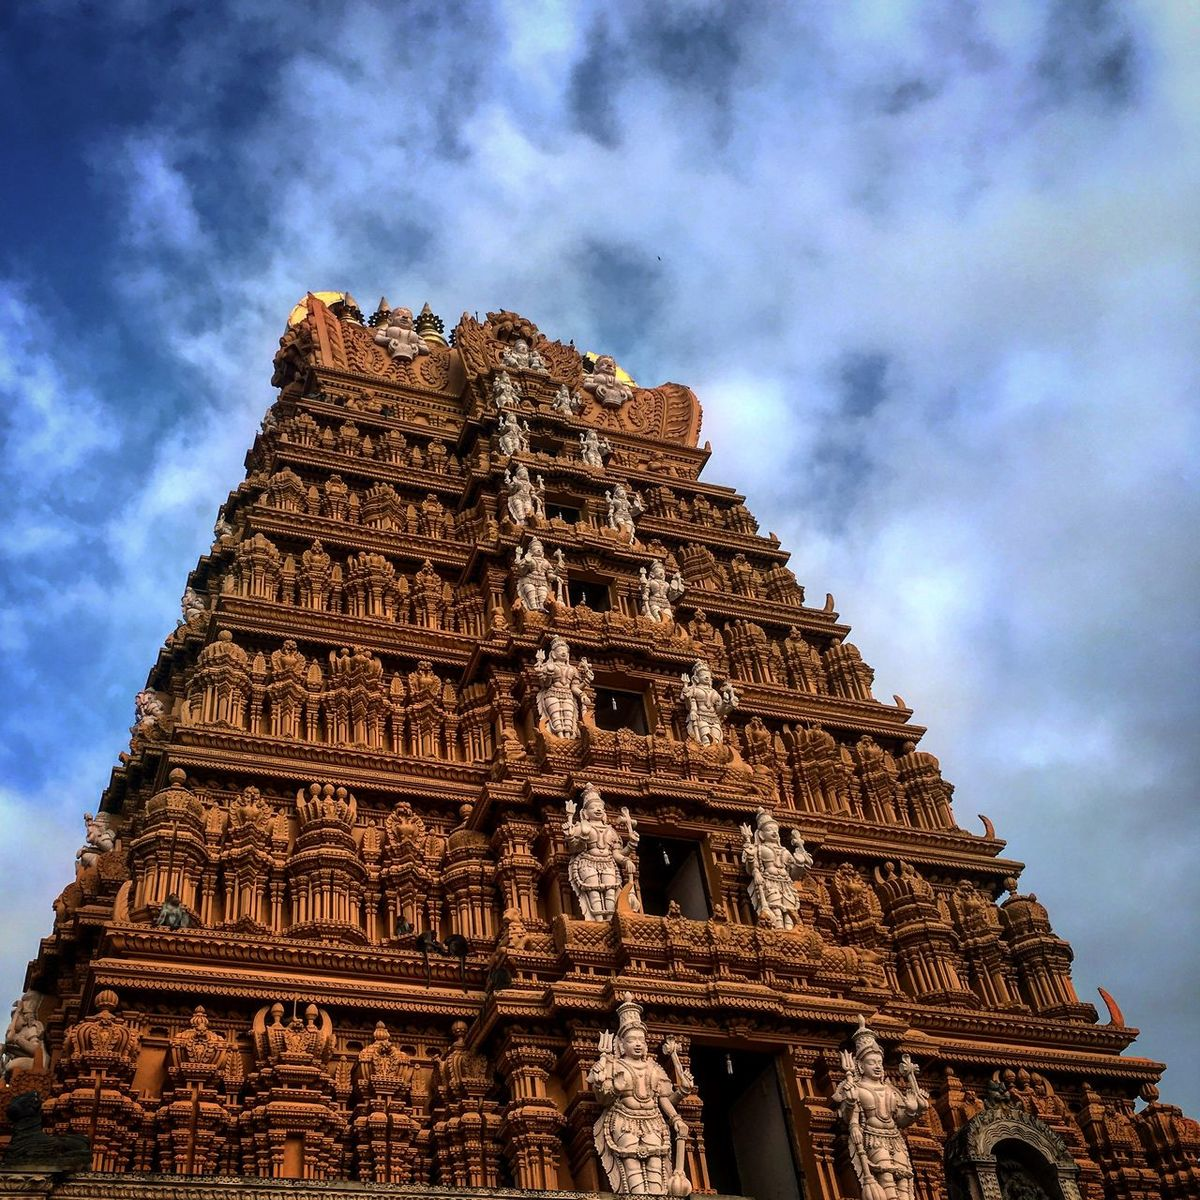 The Towering Gopuram ! Ancient Ancient Civilization Architecture Art And Craft Building Exterior Built Structure Capital Cities  Carving - Craft Product Cloud - Sky Famous Place Gopuram History Lord Siva Ornate Place Of Worship Religion Spirituality The Past Tourism Travel Travel Destinations